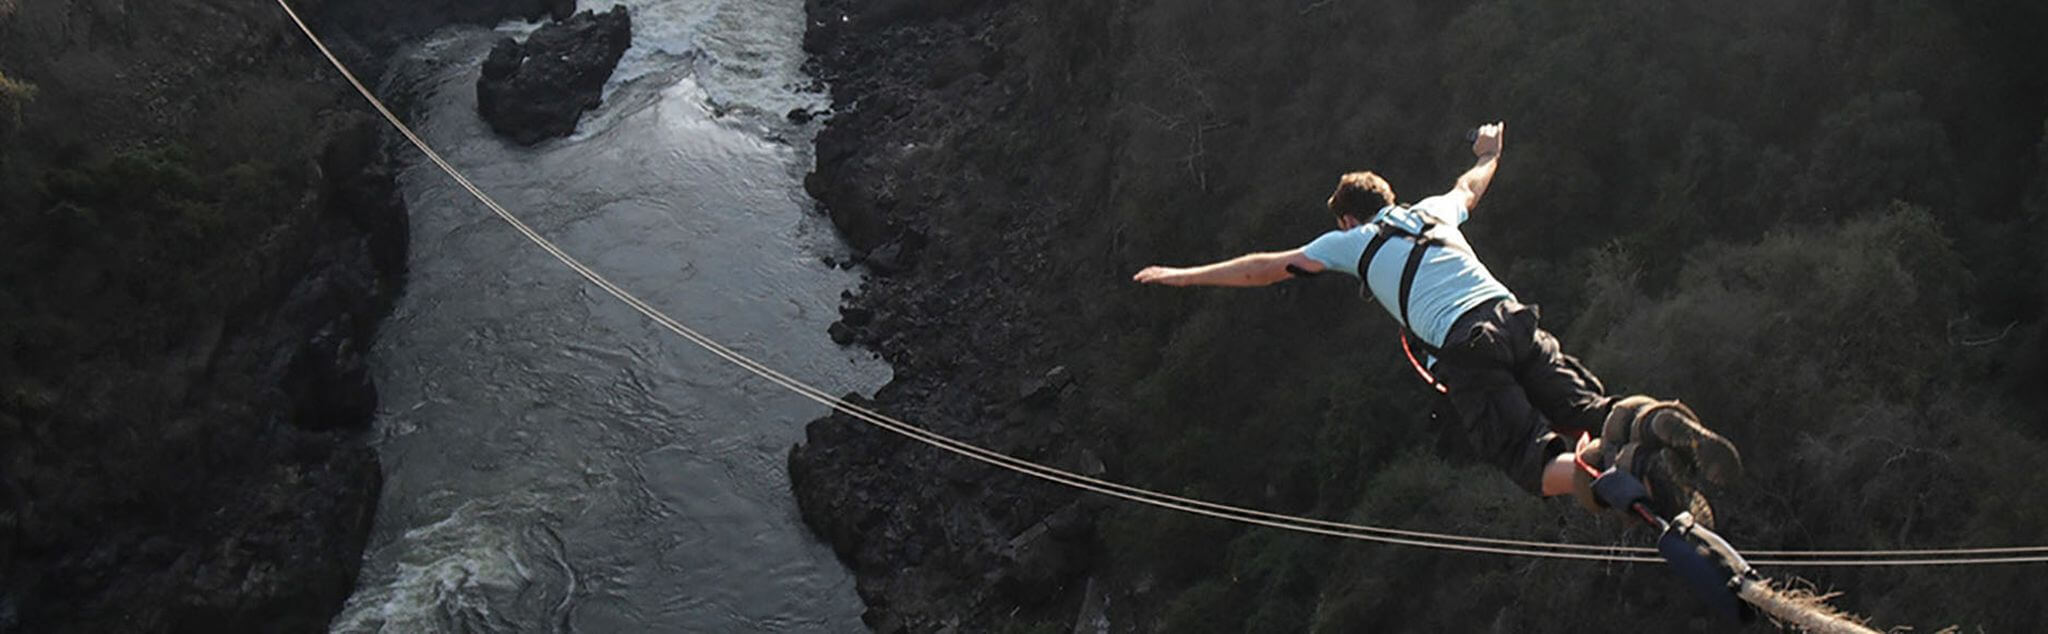 Bungee Jumping in Mexico